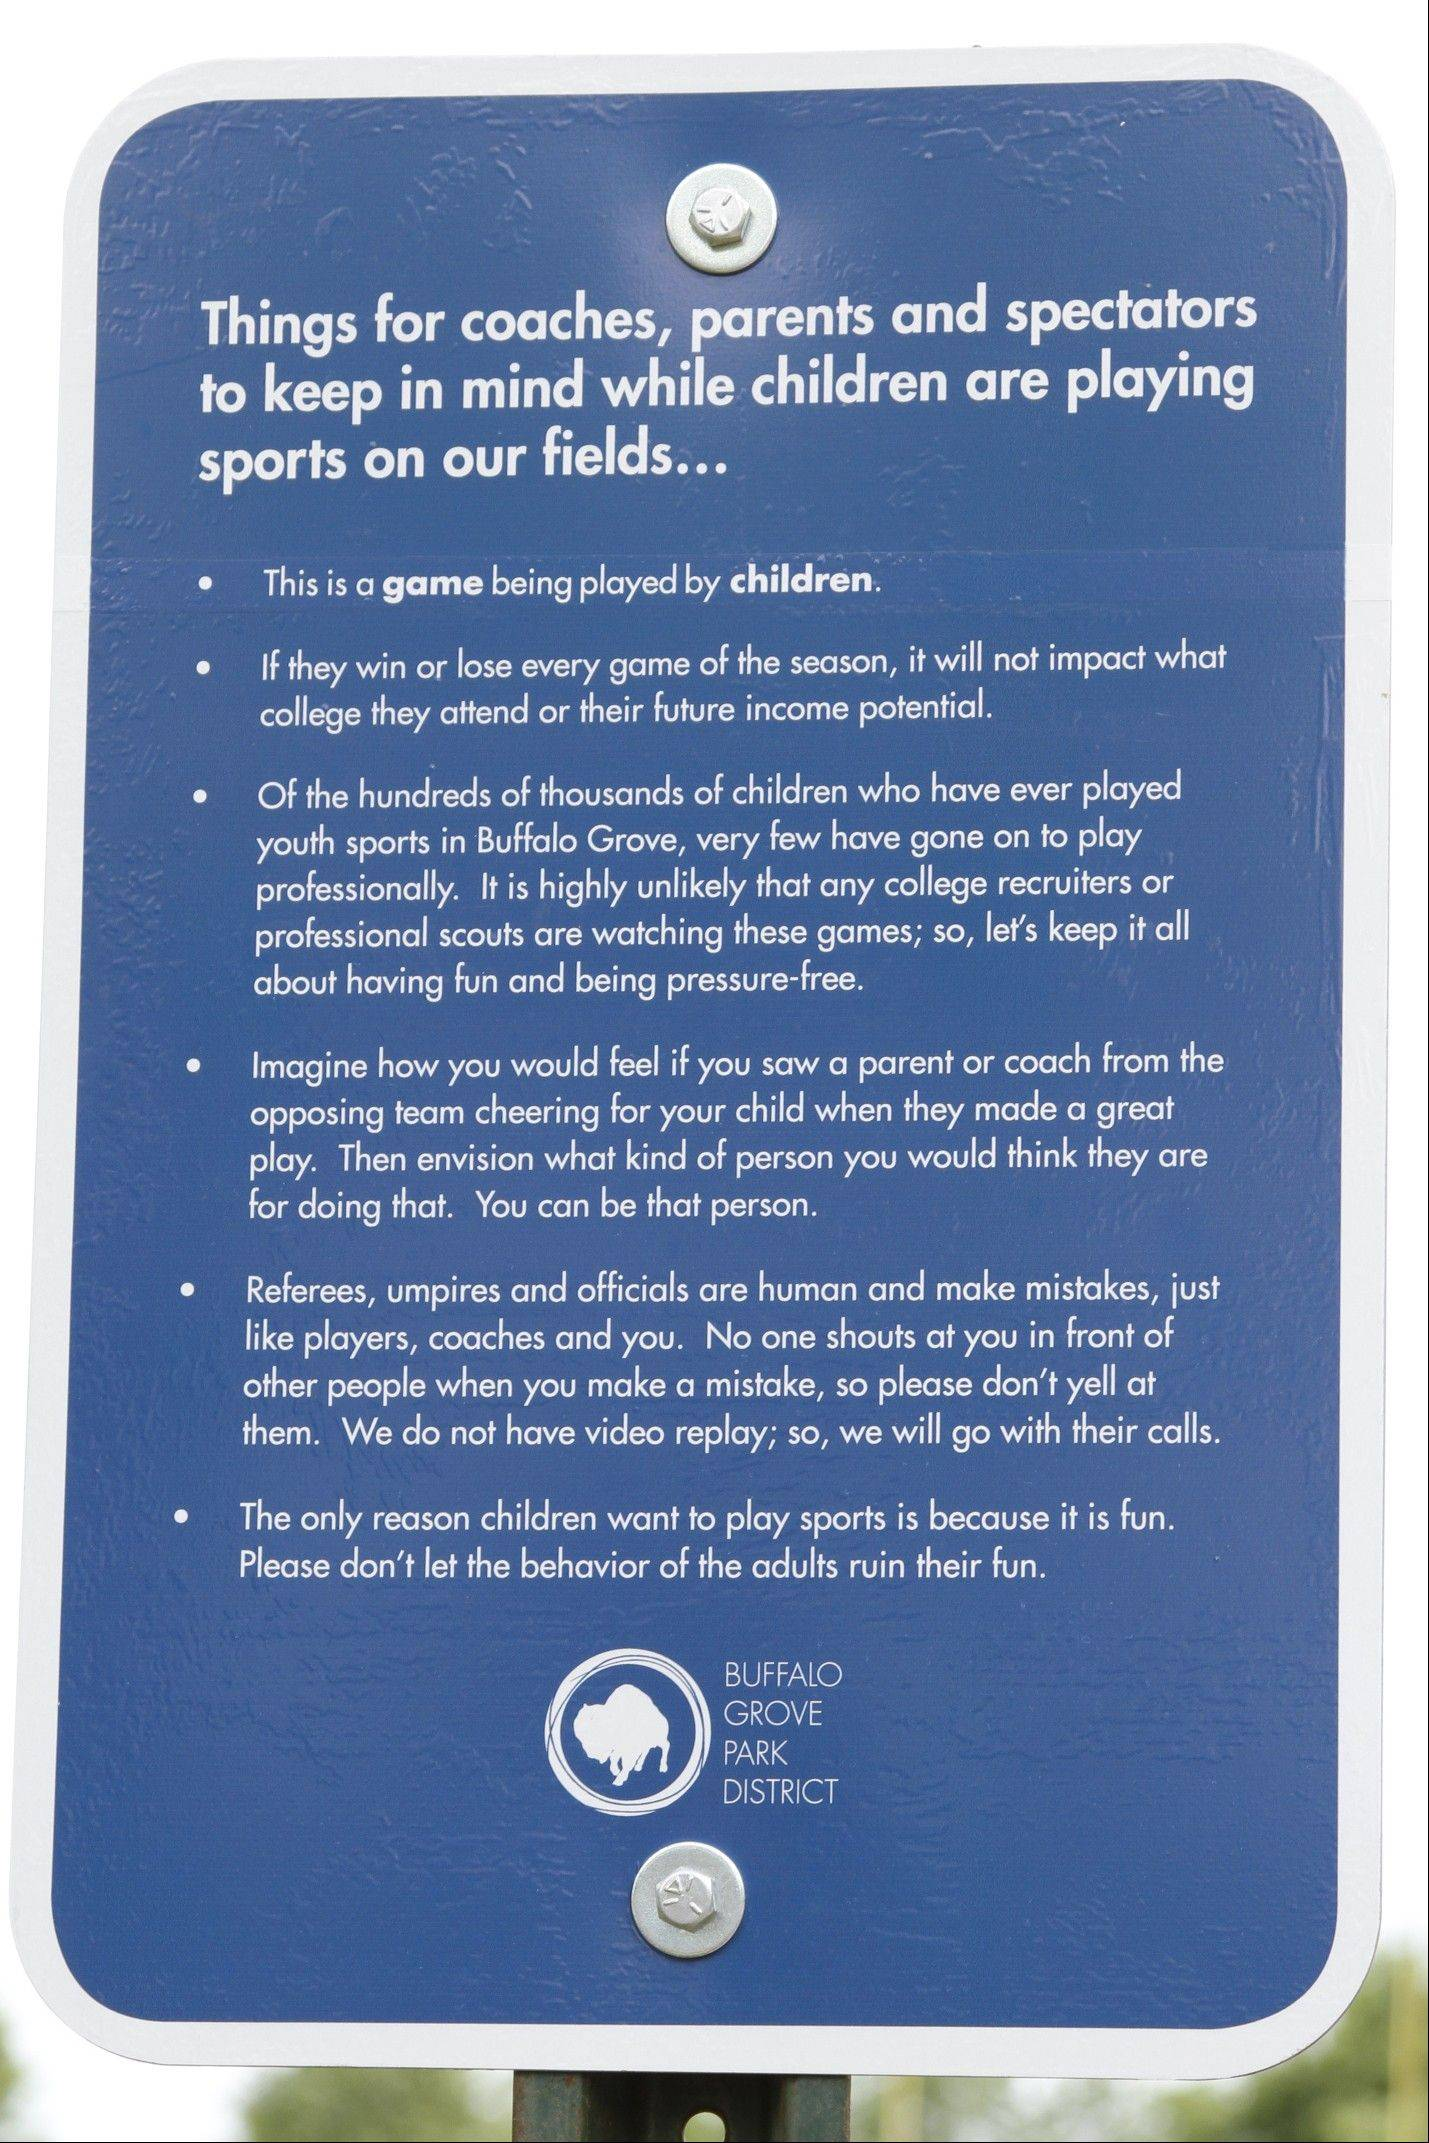 Courtesy Buffalo Grove Park District This is one of the signs being put up by the Buffalo Grove Park District to discourage inappropriate adult behavior at sporting events.